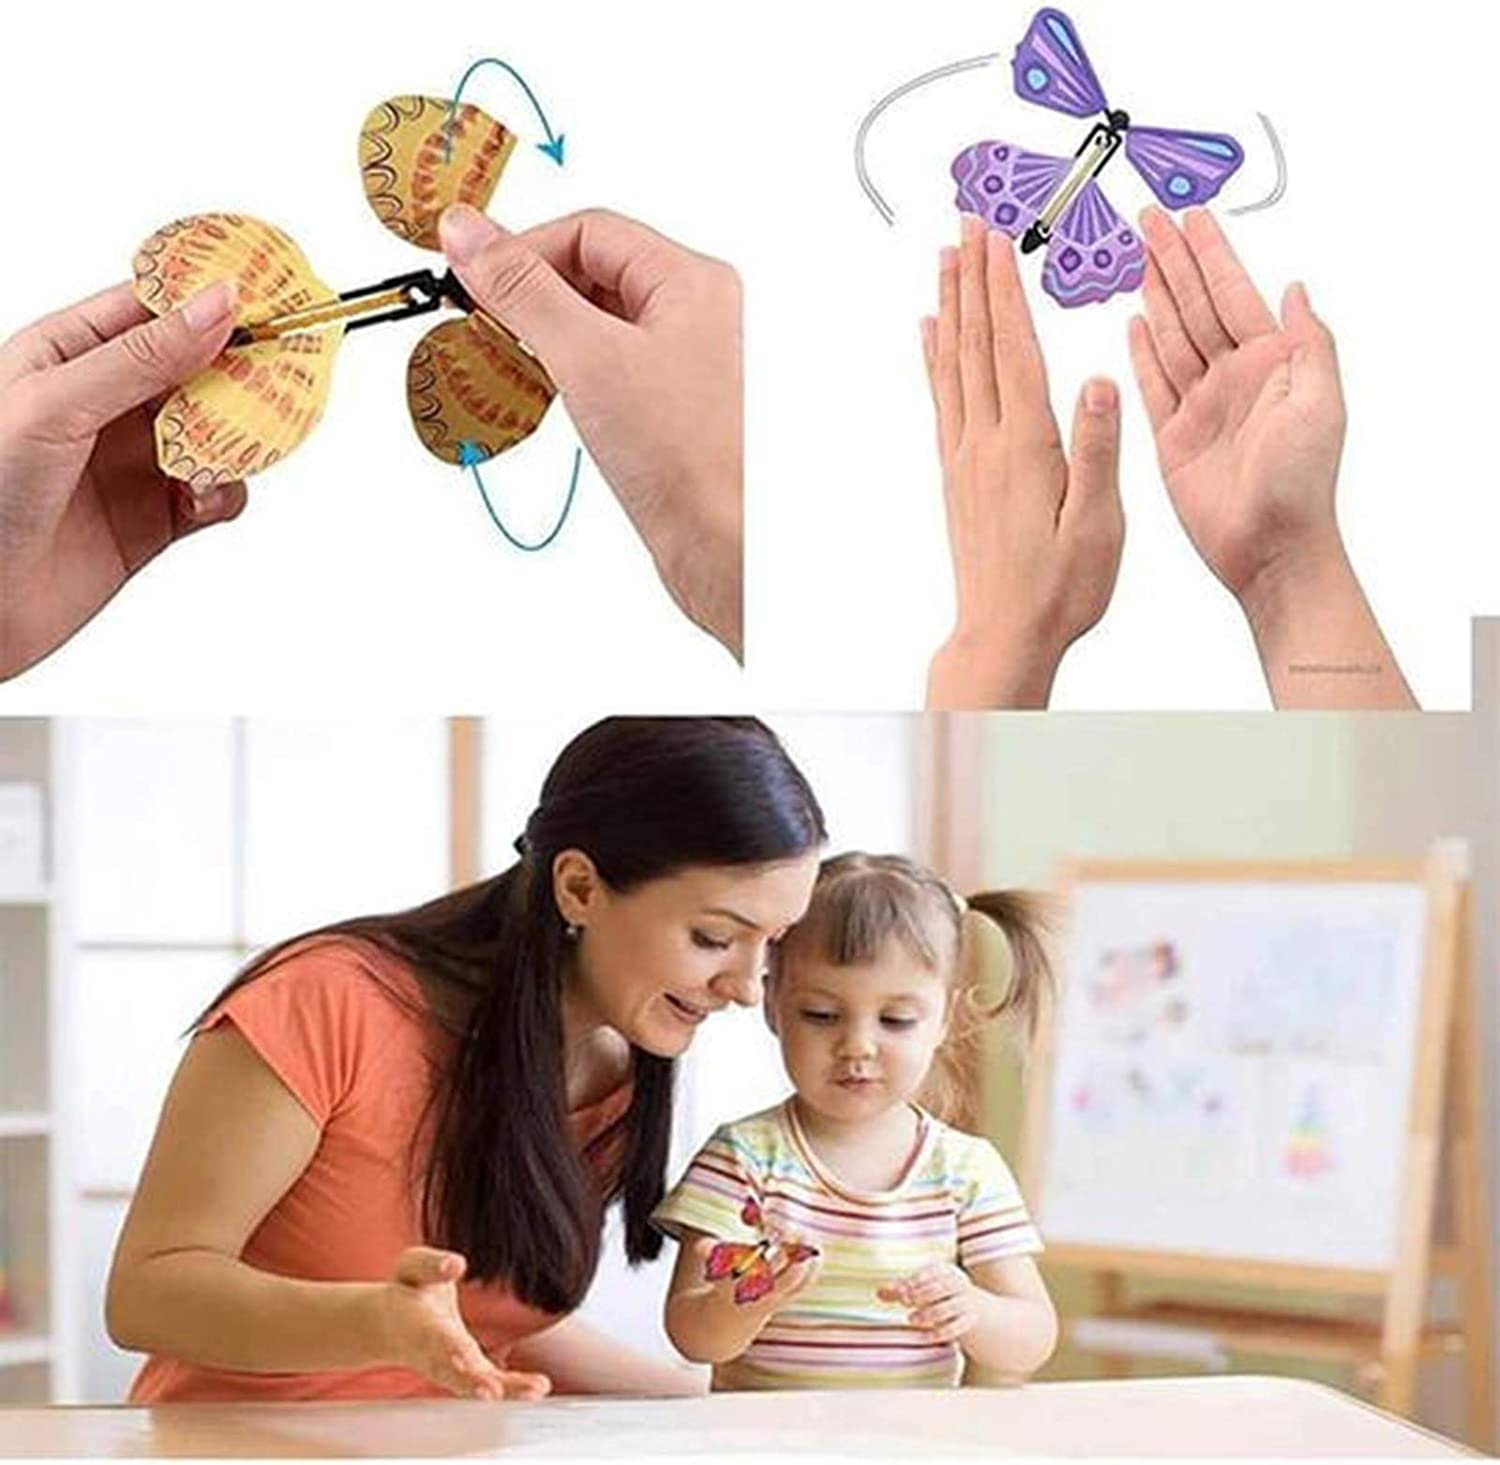 Flying Butterfly for Explosion Box 5Pcs Magic Butterfly flying Card Toy Rubber Band Powered Butterfly-Wind up Butterflies Toy Set Color Random